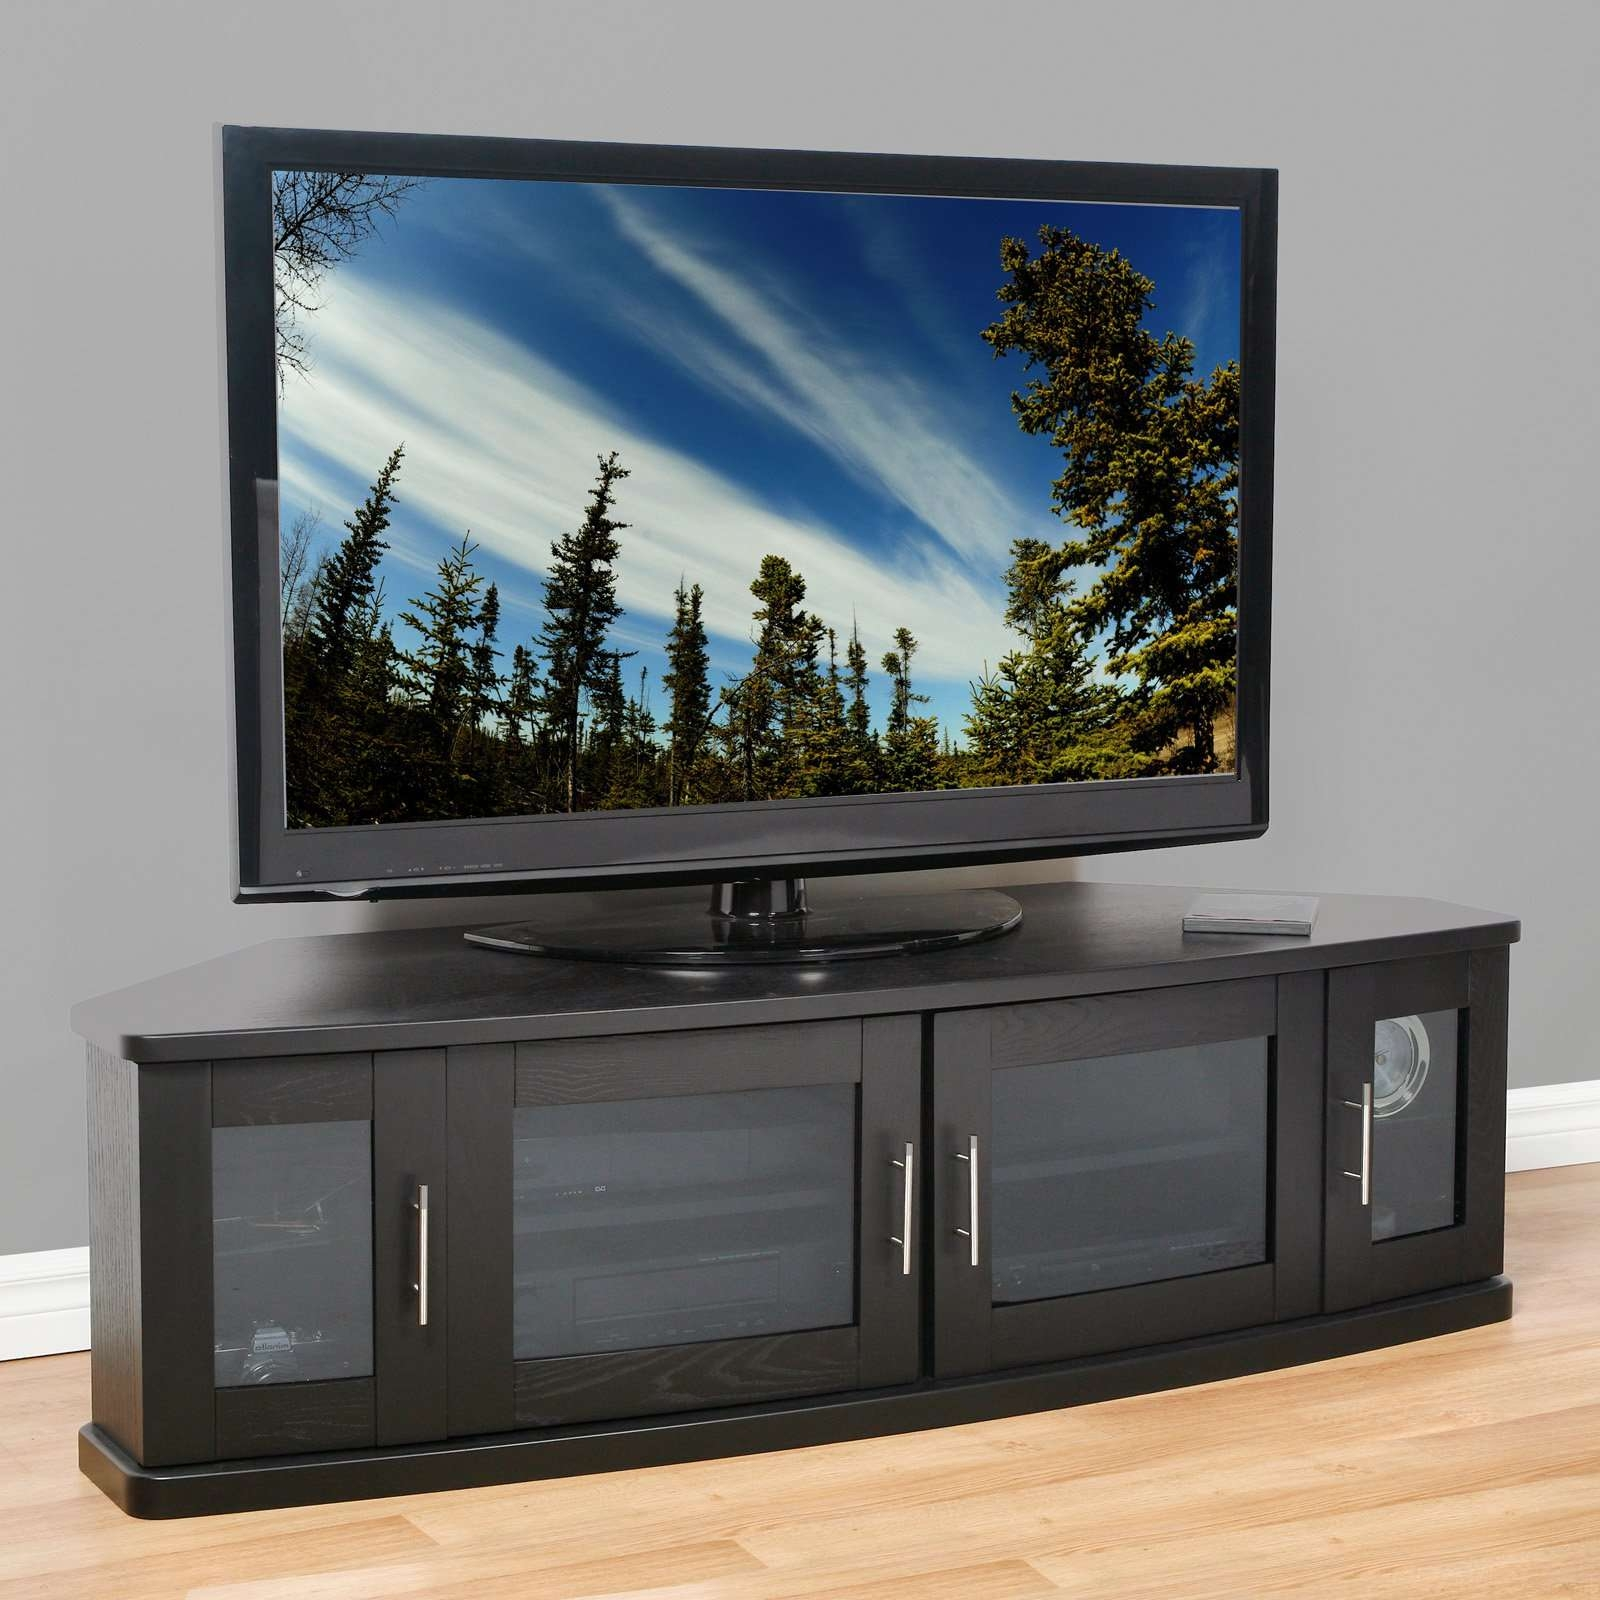 Modern Black Wooden Tv Stand With Frosted Glass Doors Of Dazzling With Glass Tv Cabinets With Doors (View 12 of 20)